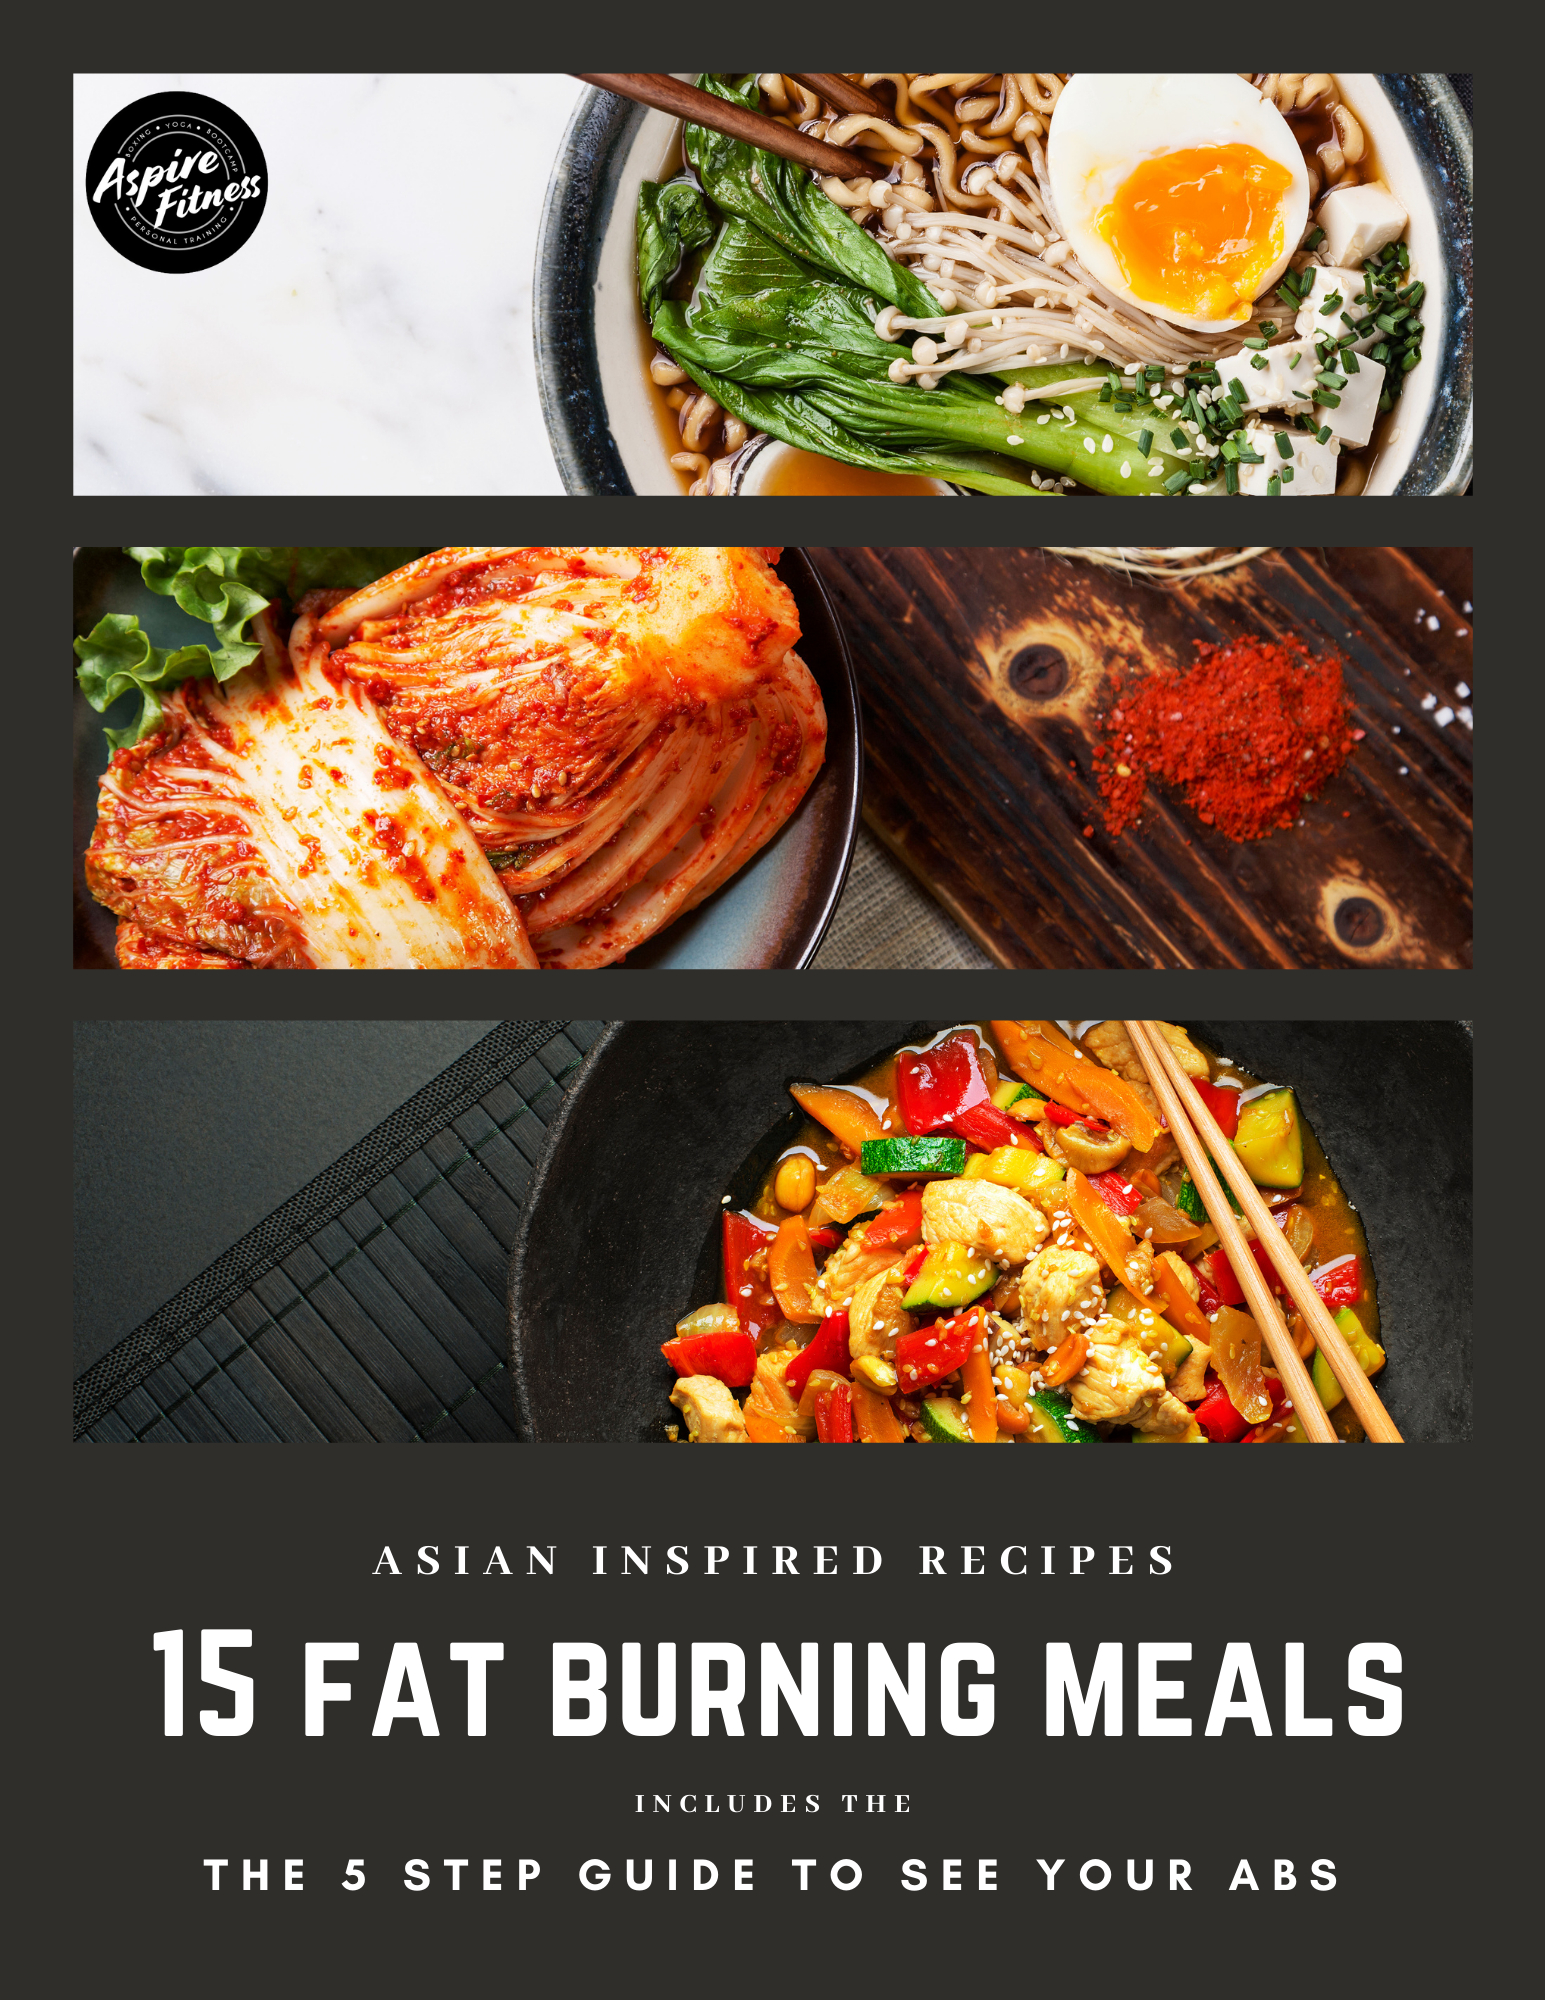 Aspire Fitness Cookbook (1).png